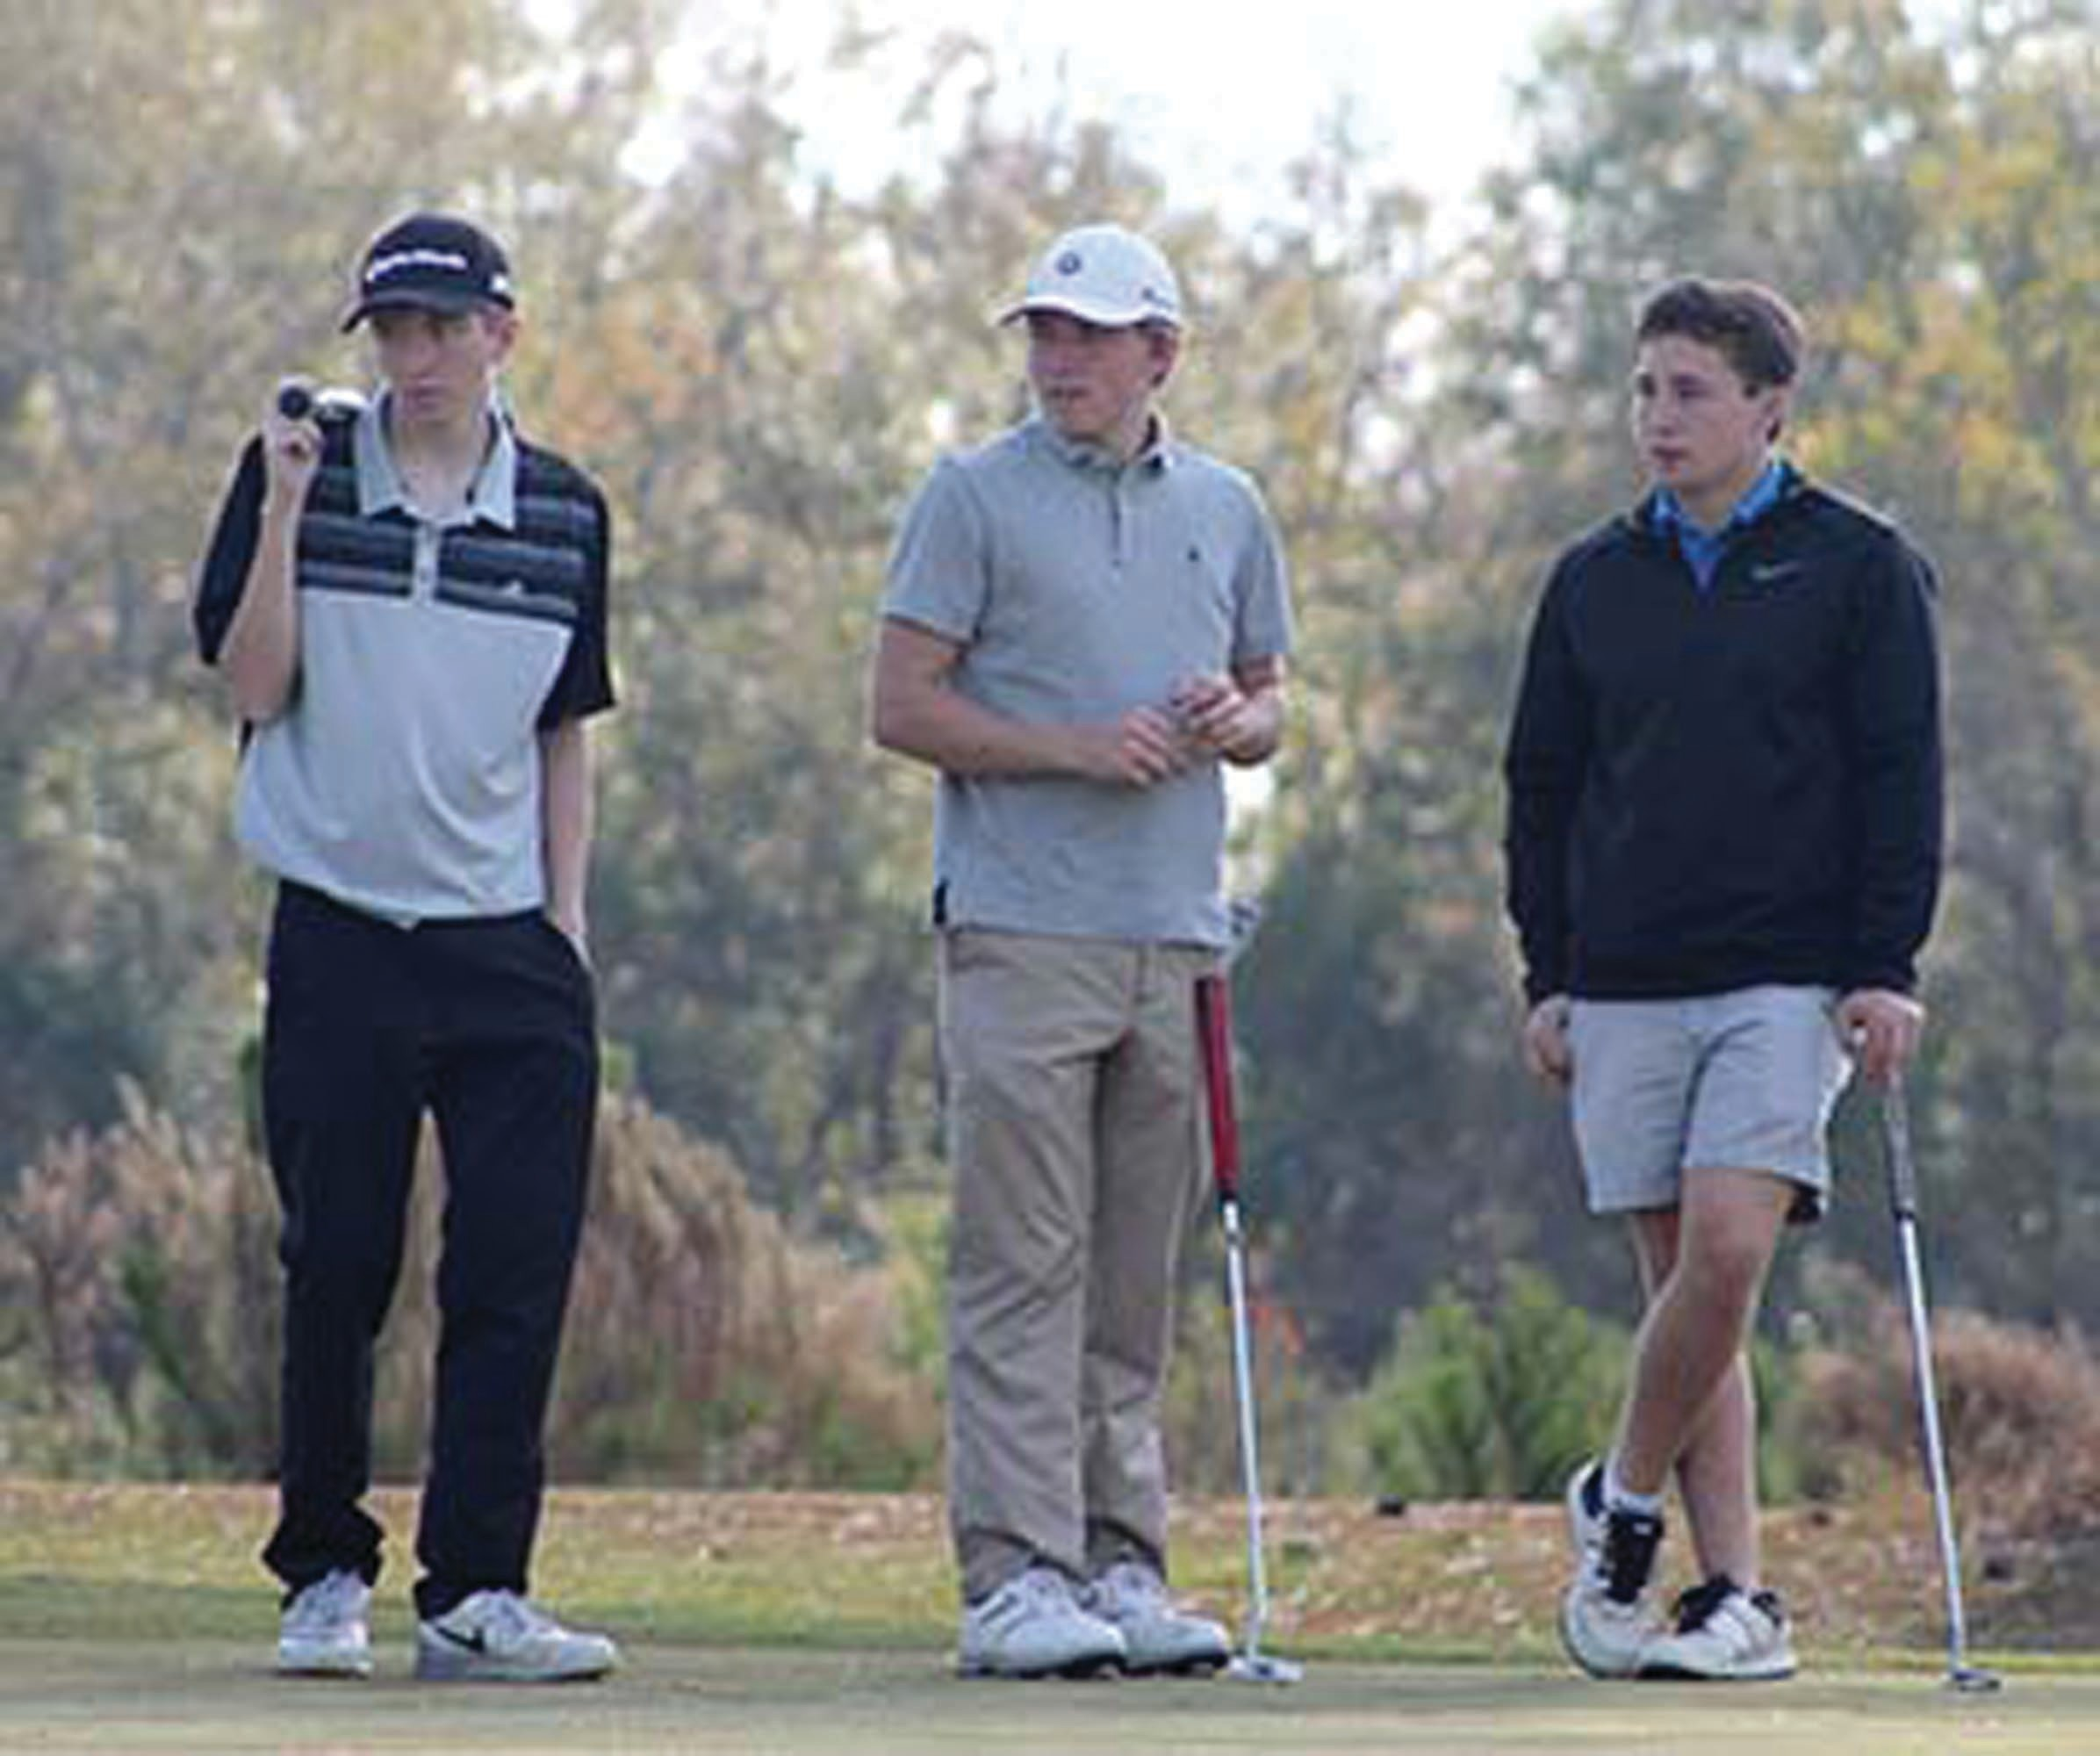 Hunter White, Robert Dykes and Jacob Richburg, all 17, await their turn to play during the Clarendon County Youth Golf Tournament held Saturday at Shannon Greens Golf Course,  The threesome finished the tournament in first place.